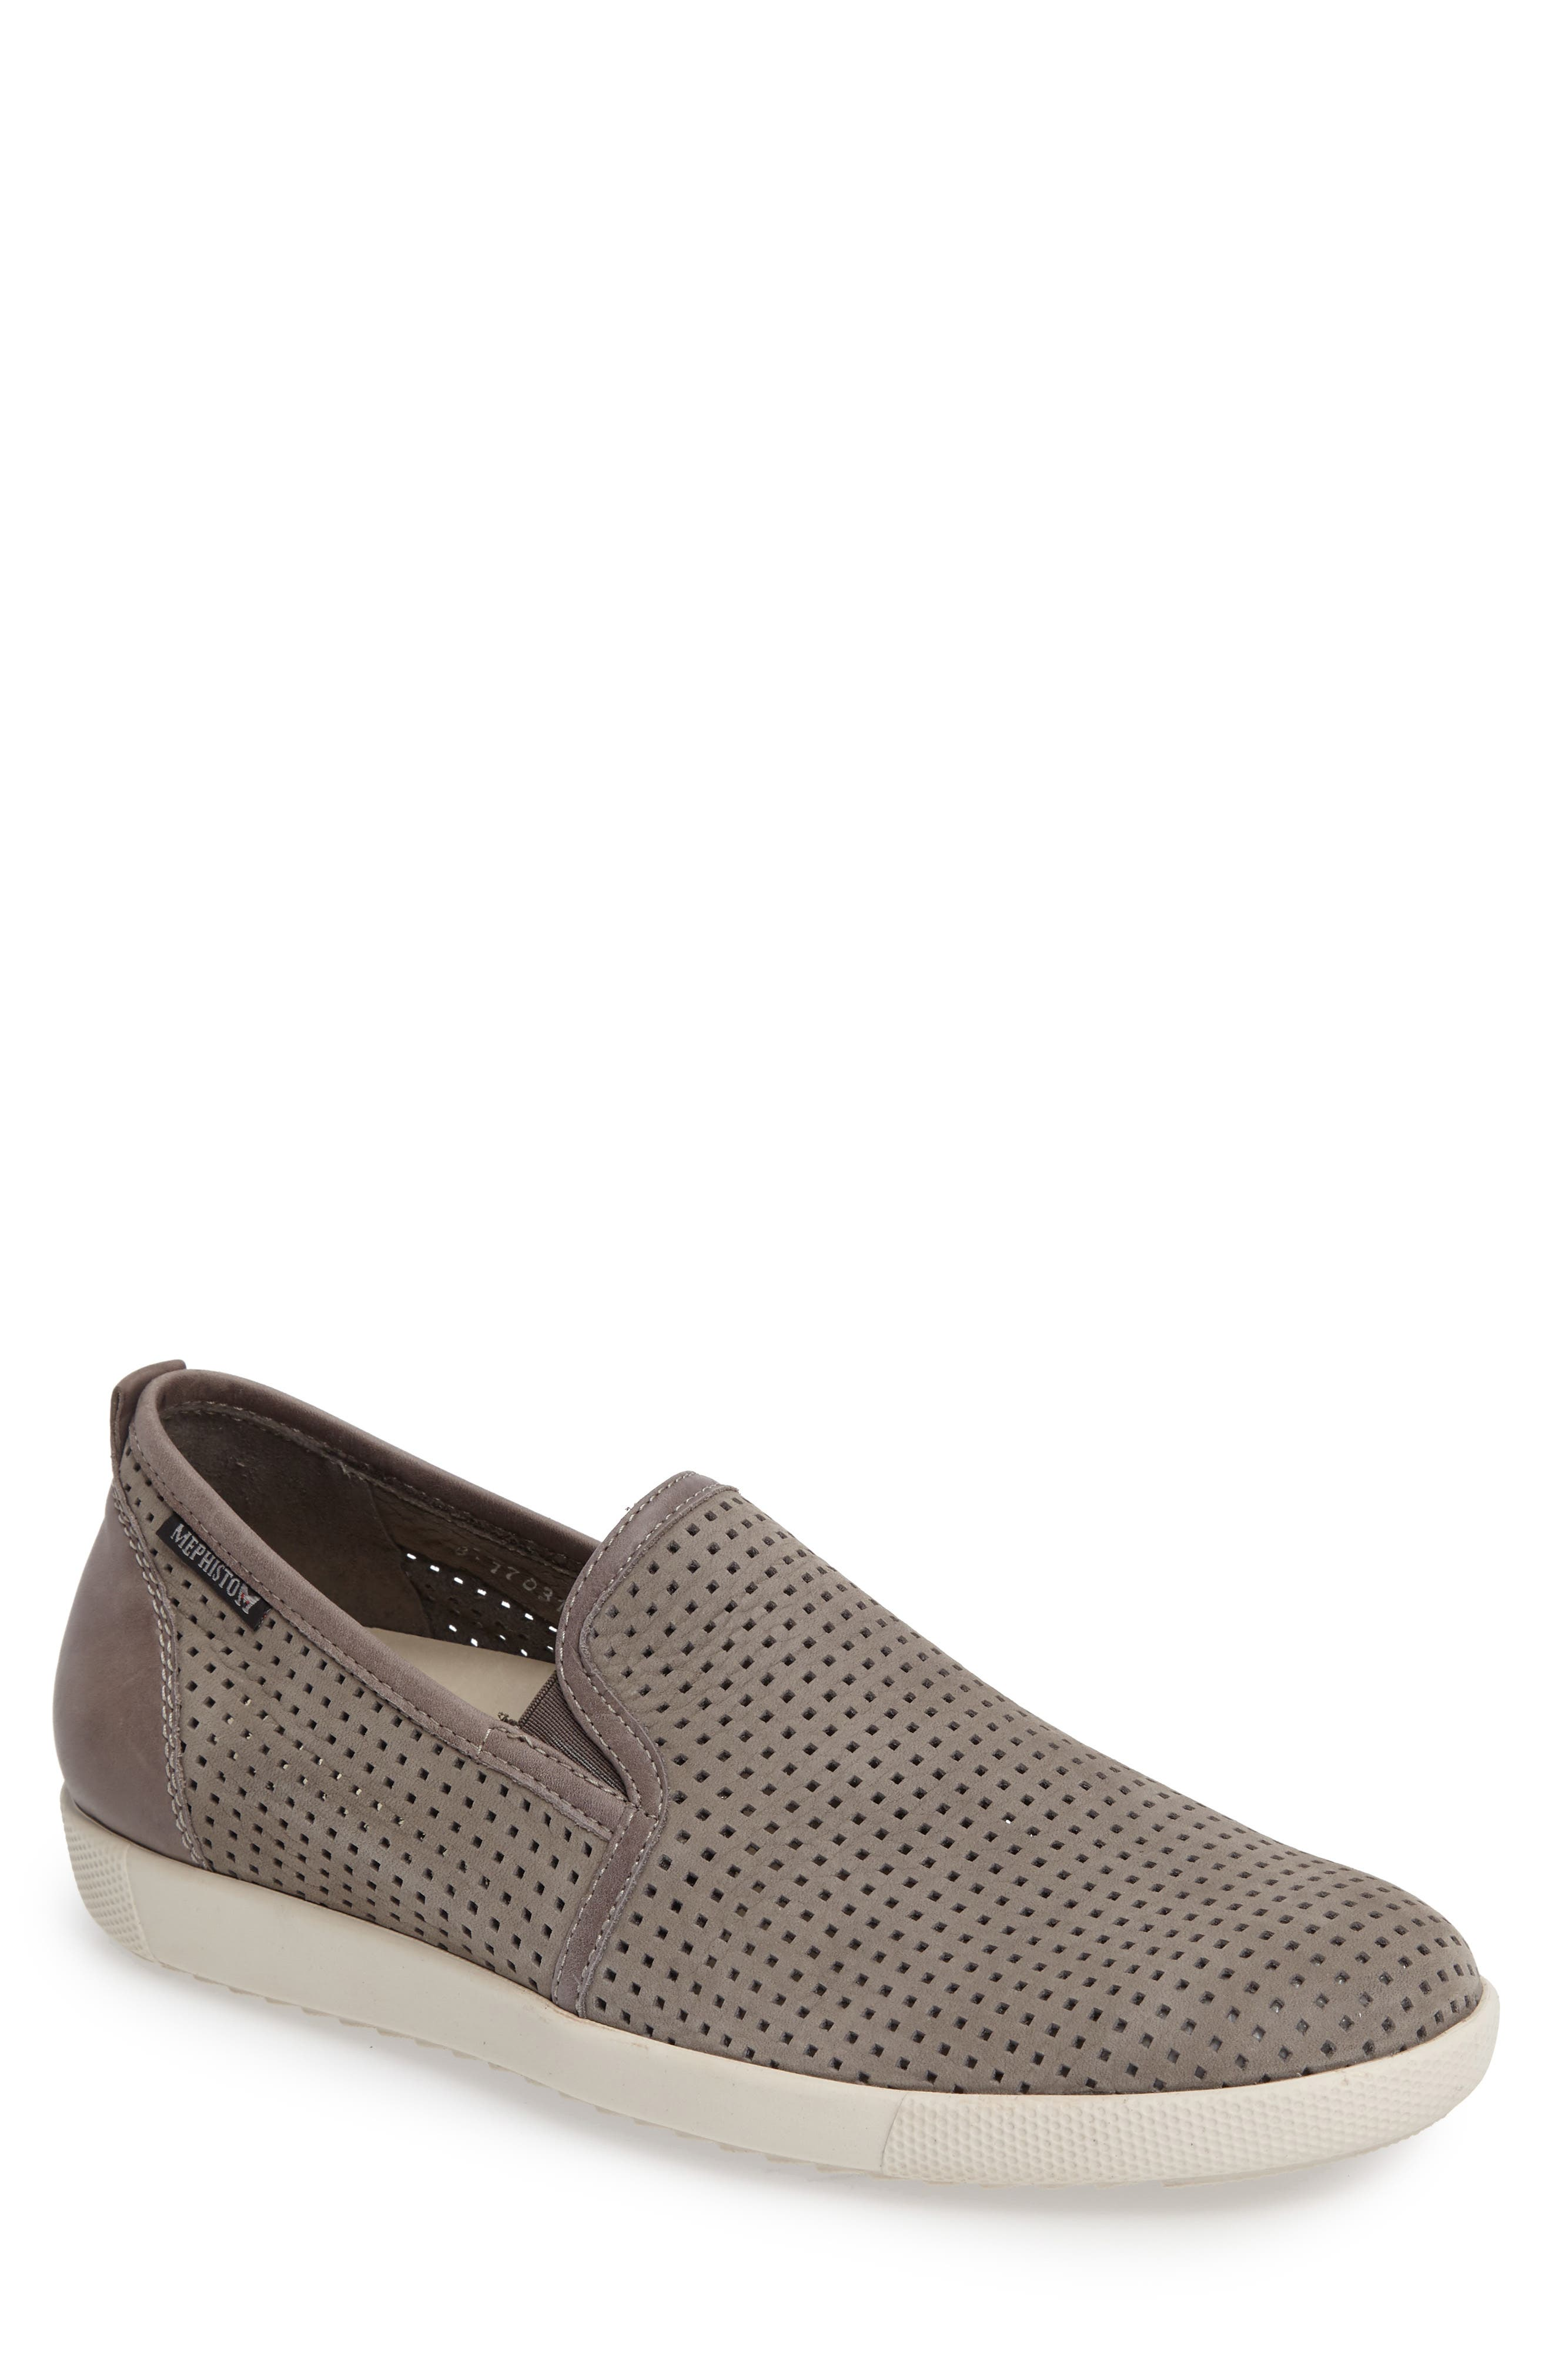 'Ulrich' Perforated Leather Slip-On,                         Main,                         color, LIGHT GREY SPORTBUCK